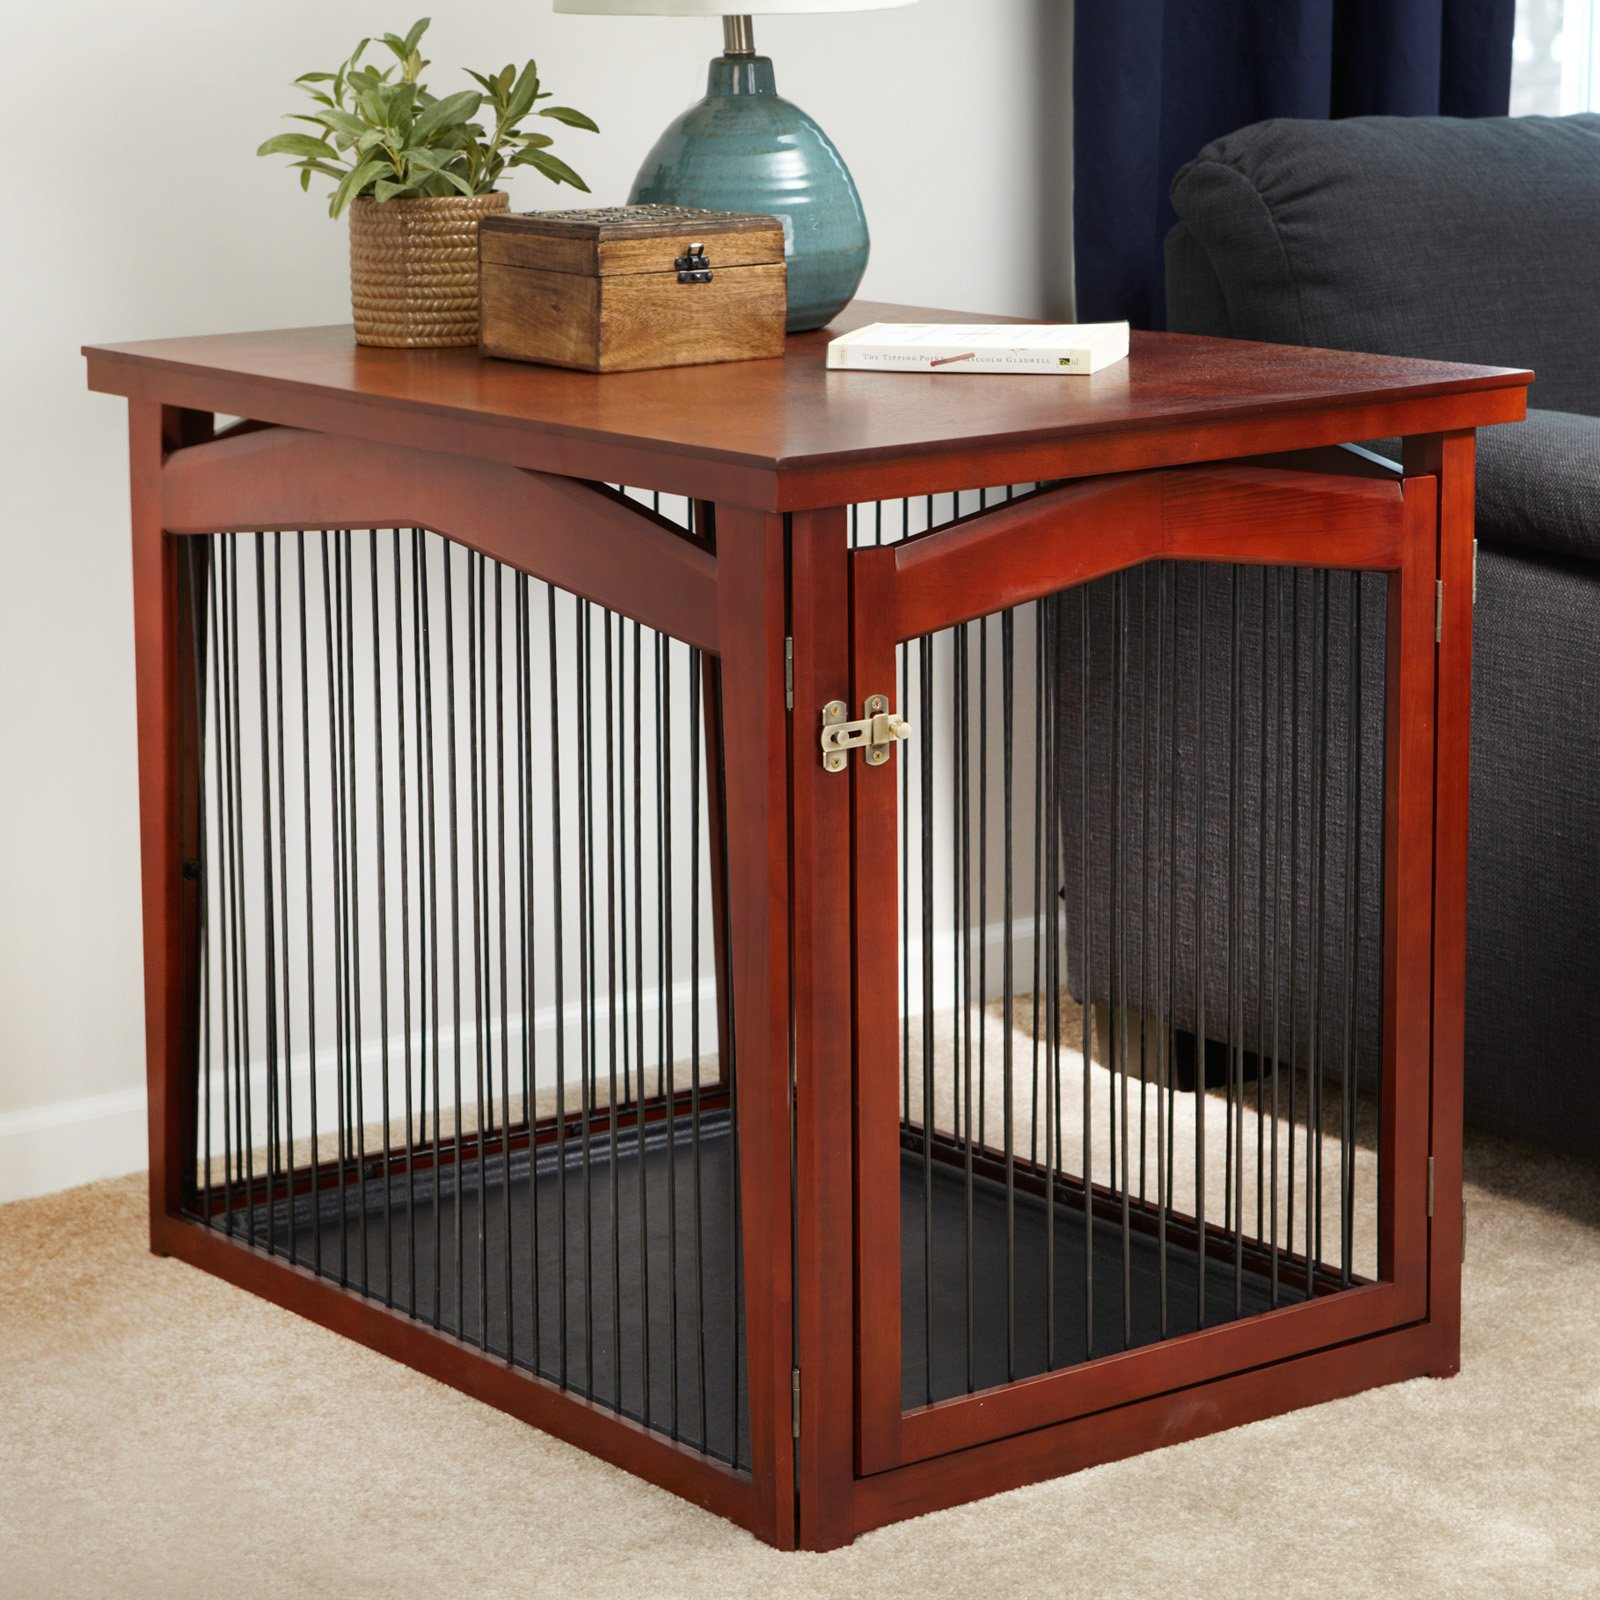 2 In 1 Crate And Gate, Large   Walmart.com